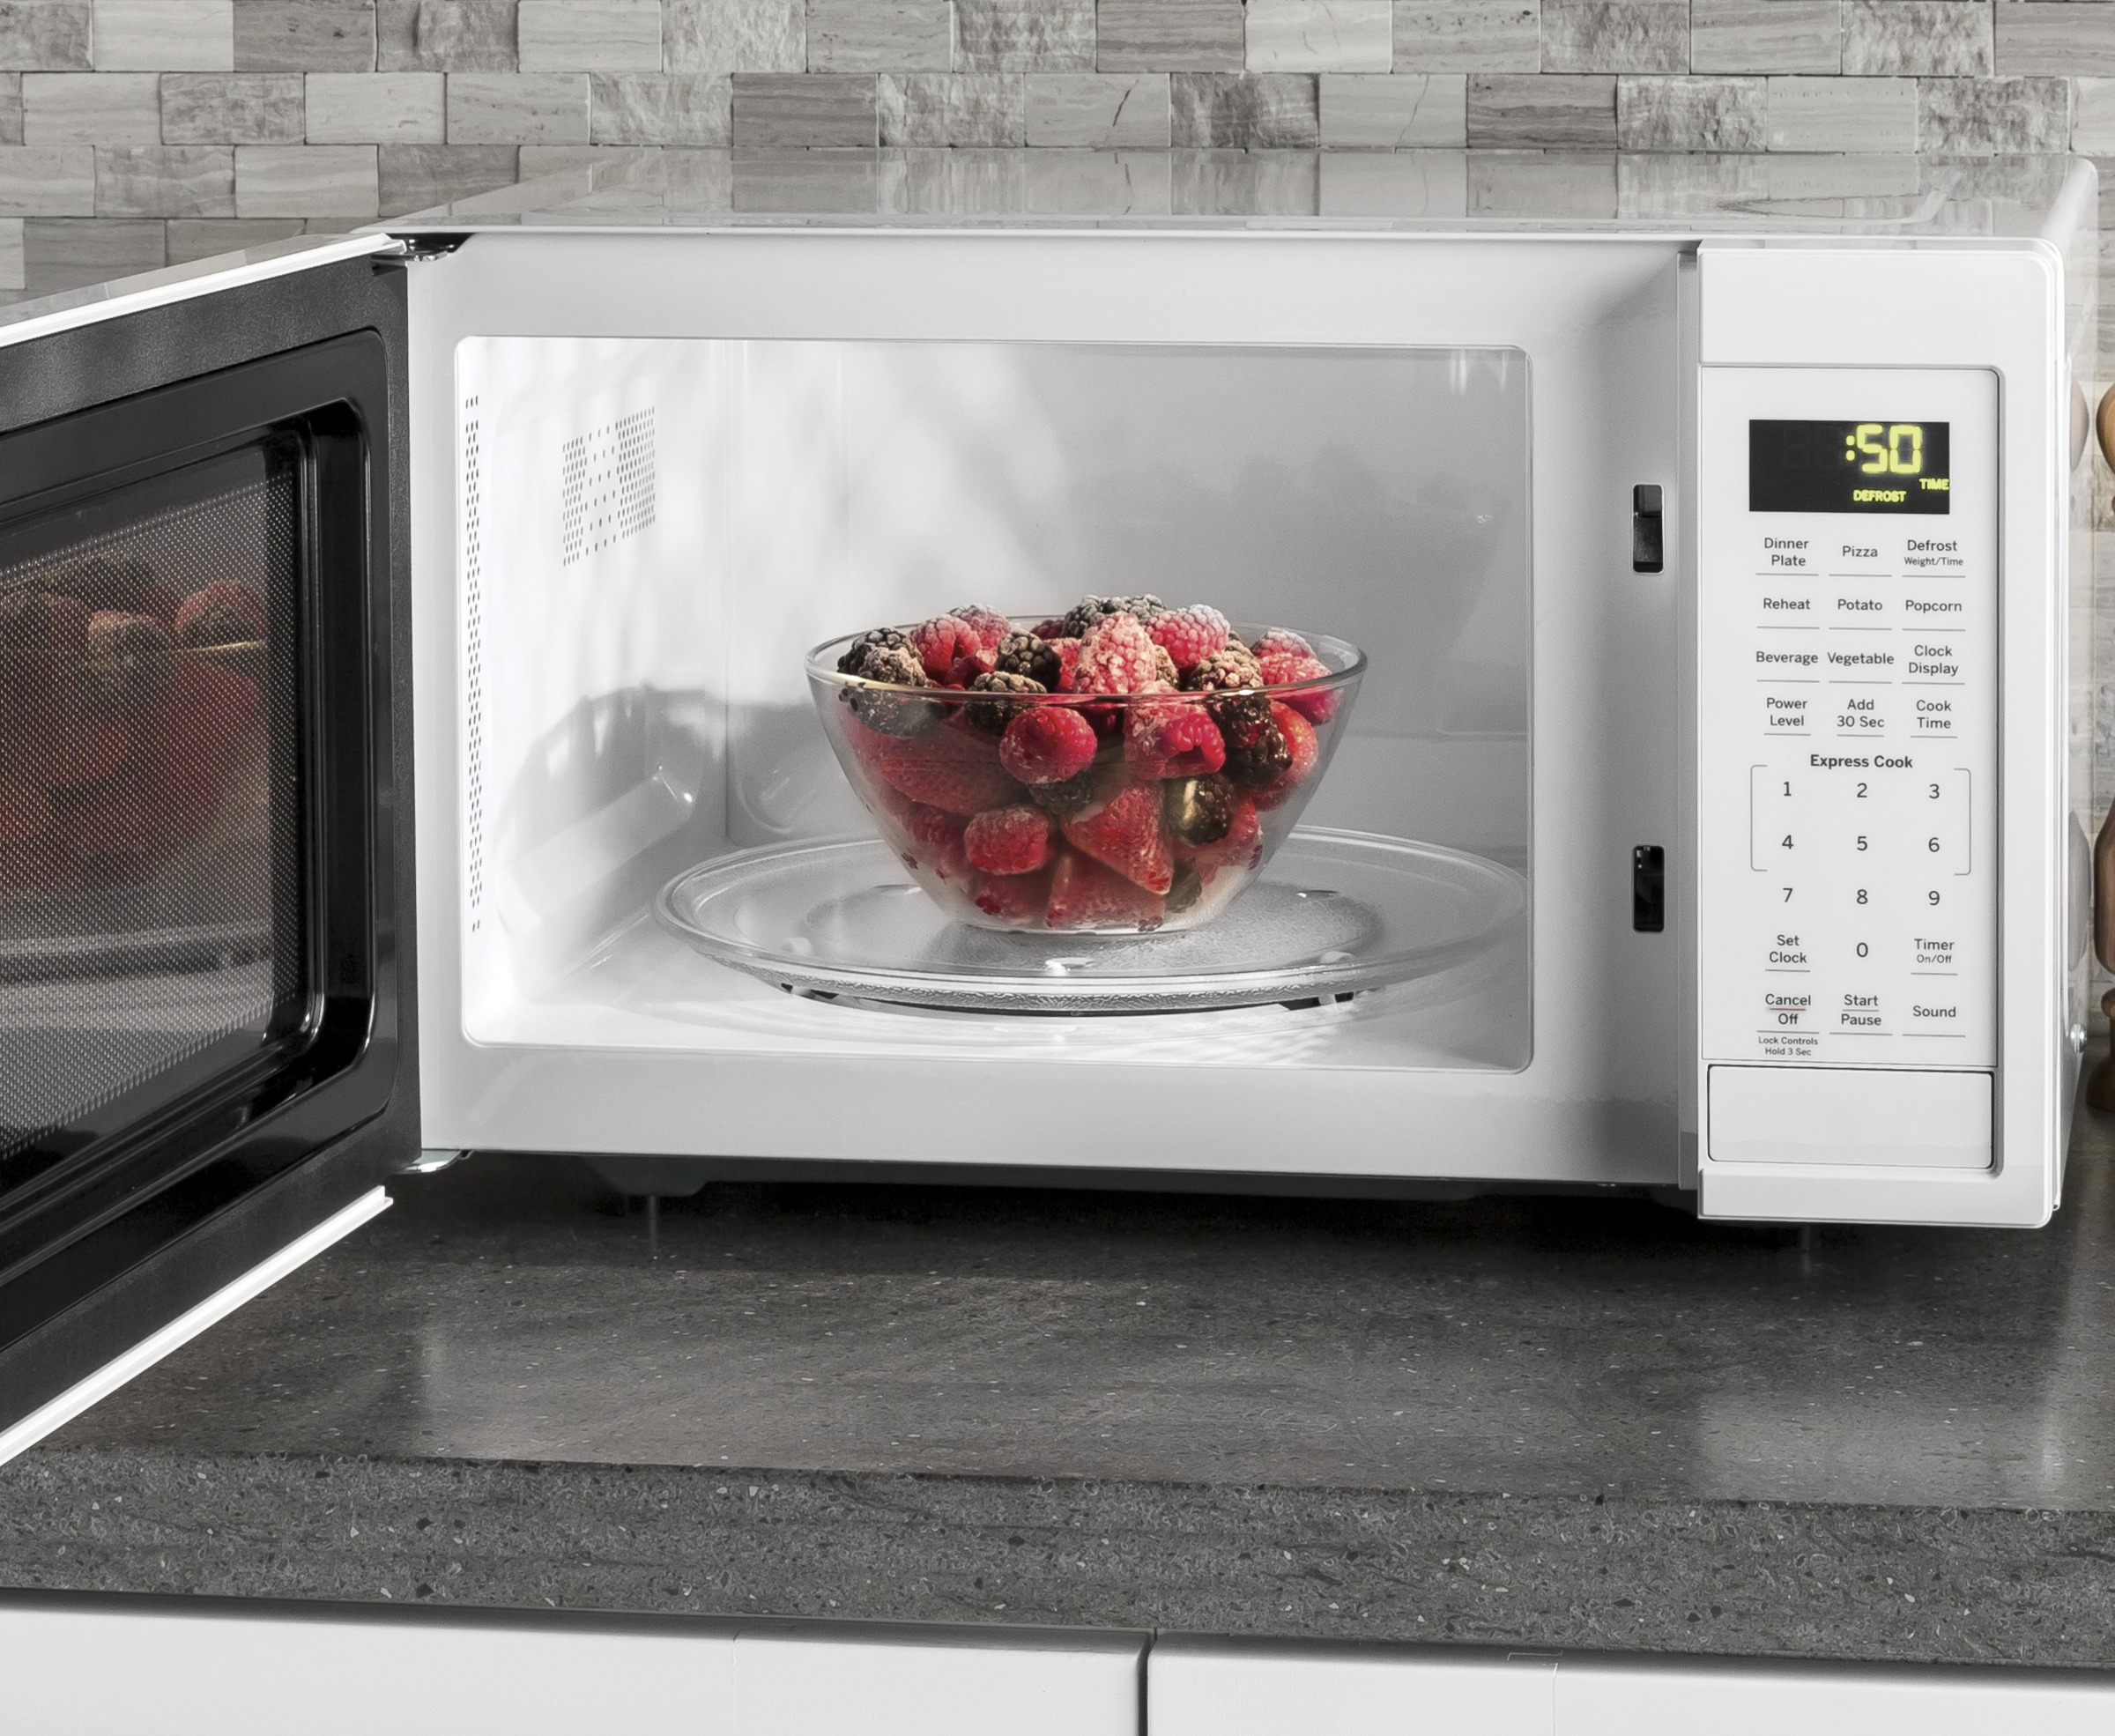 Model: JES1095DMWW | GE® 0.9 Cu. Ft. Capacity Countertop Microwave Oven